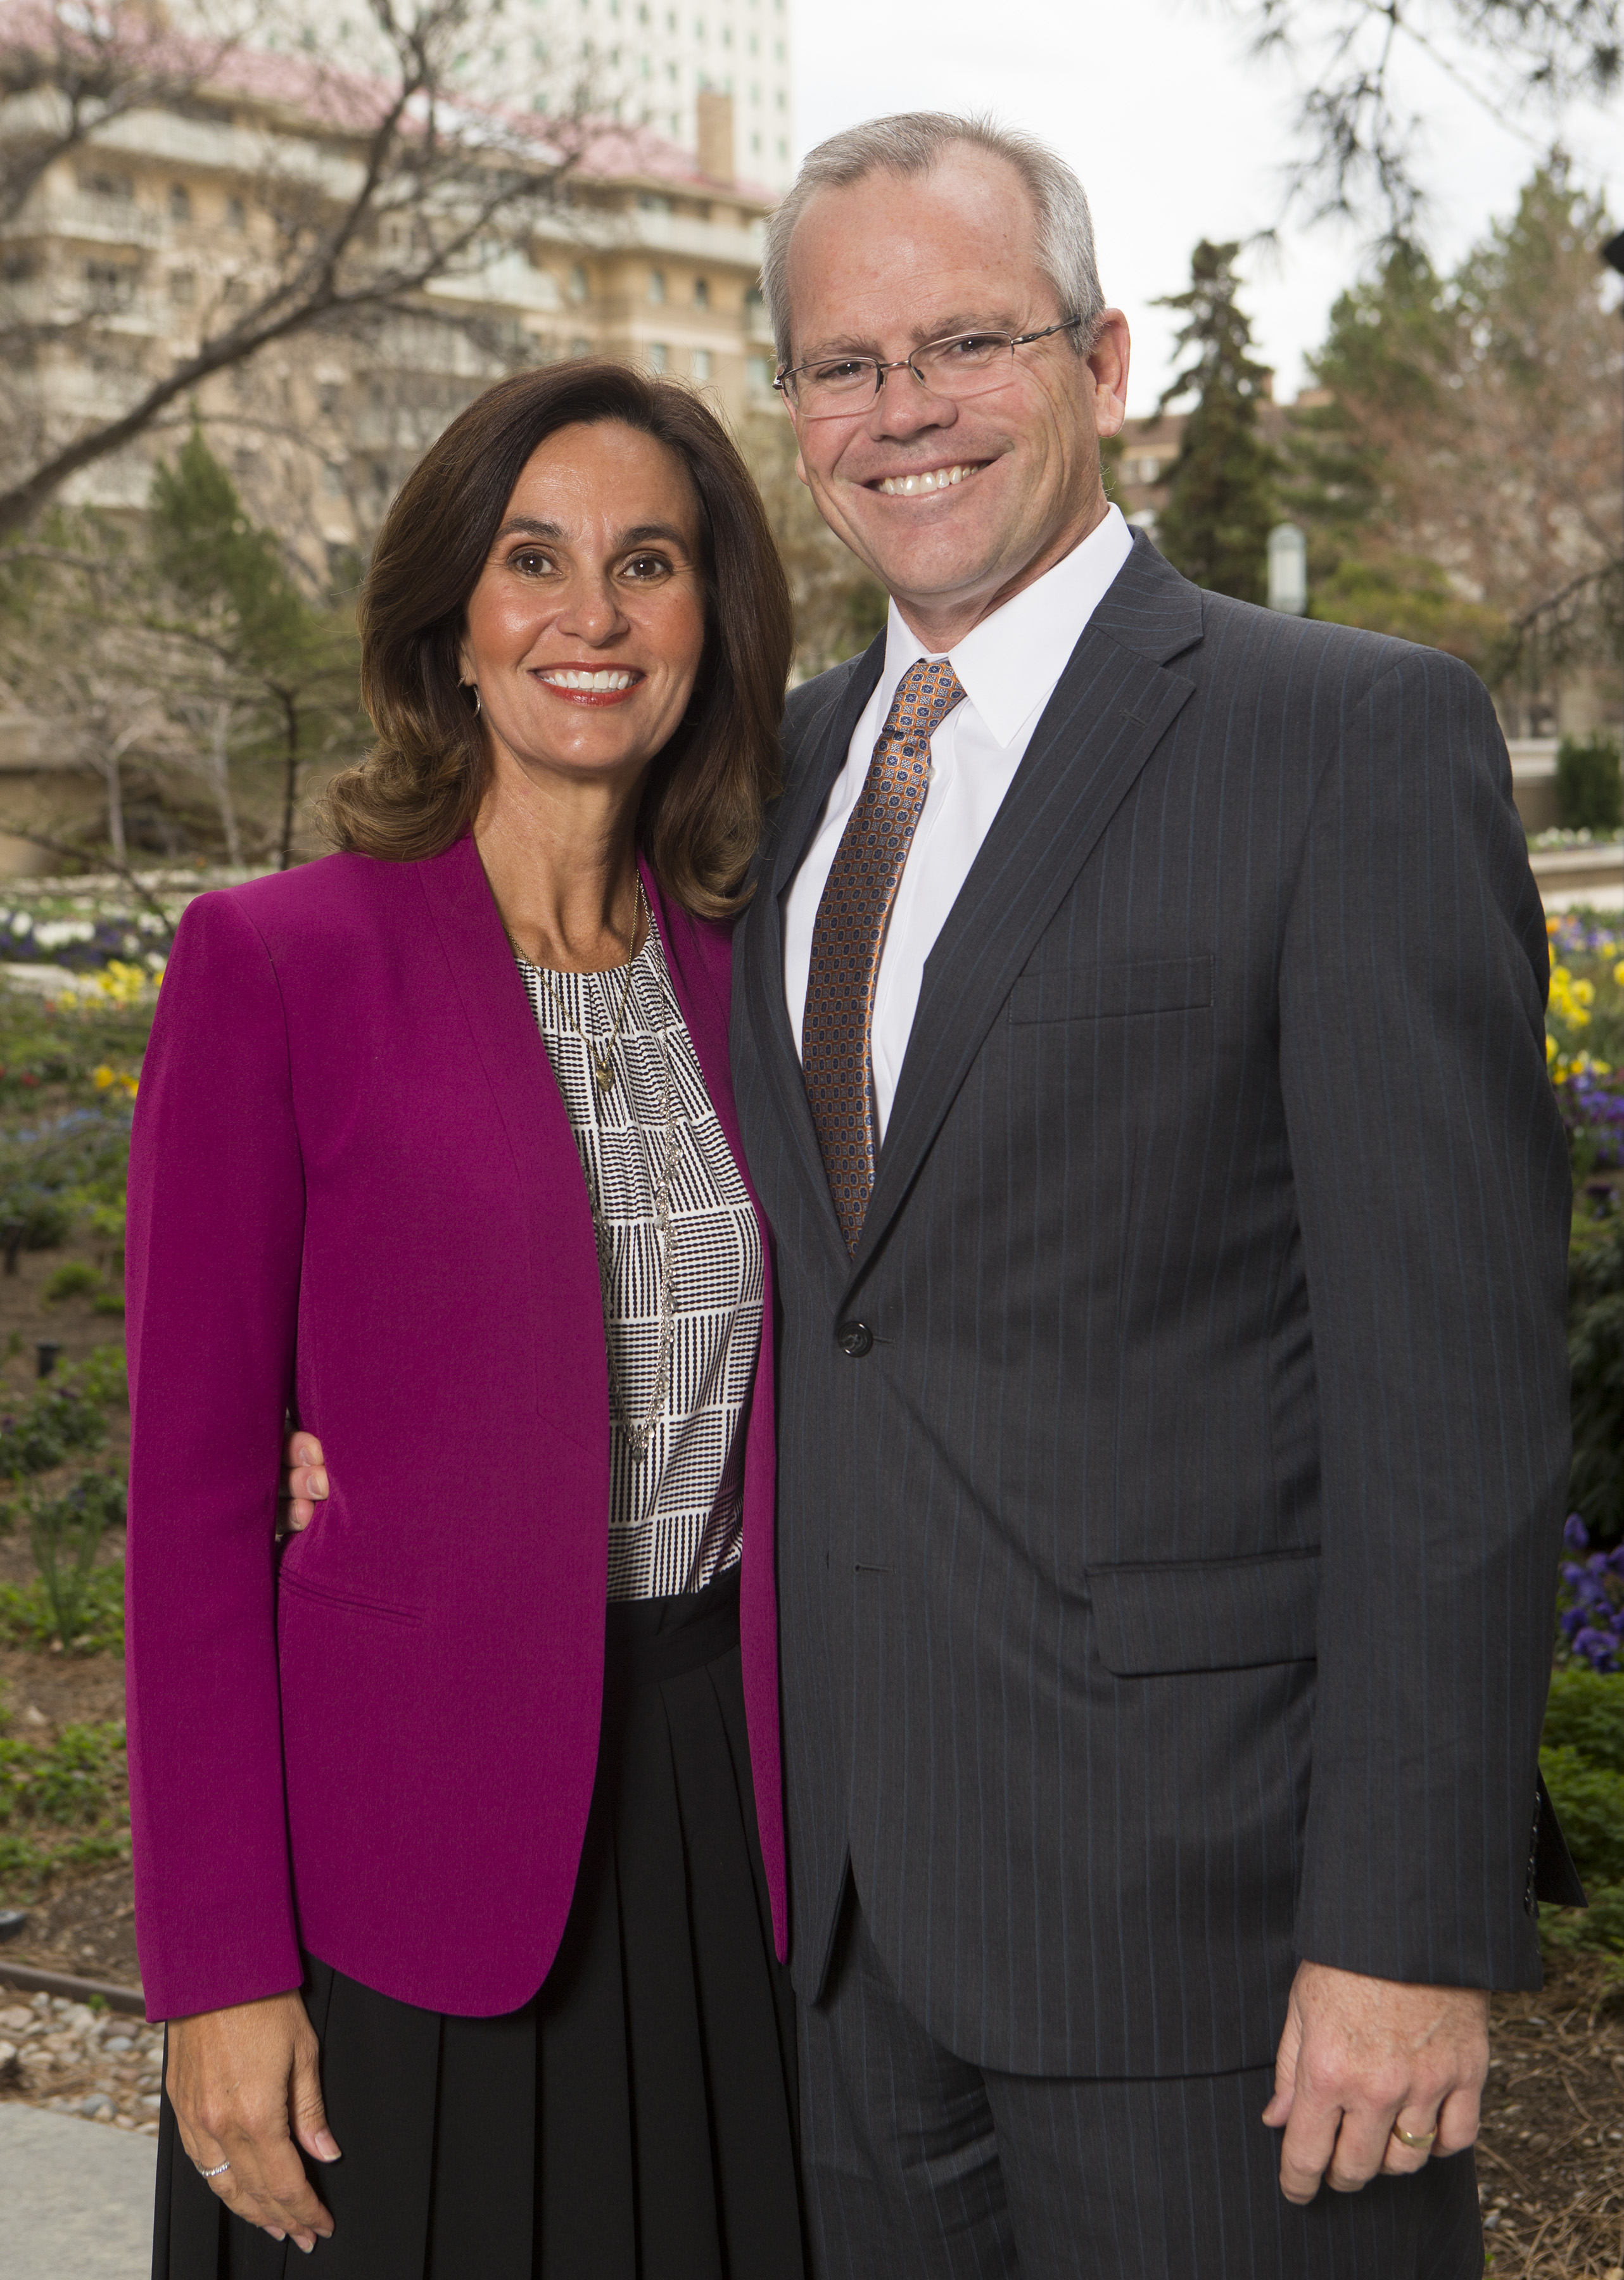 Sister Lisa L. Harkness, first counselor in the Primary General Presidency, and her husband, Brother David S. Harkness, in Salt Lake City on Monday, April 2, 2018.